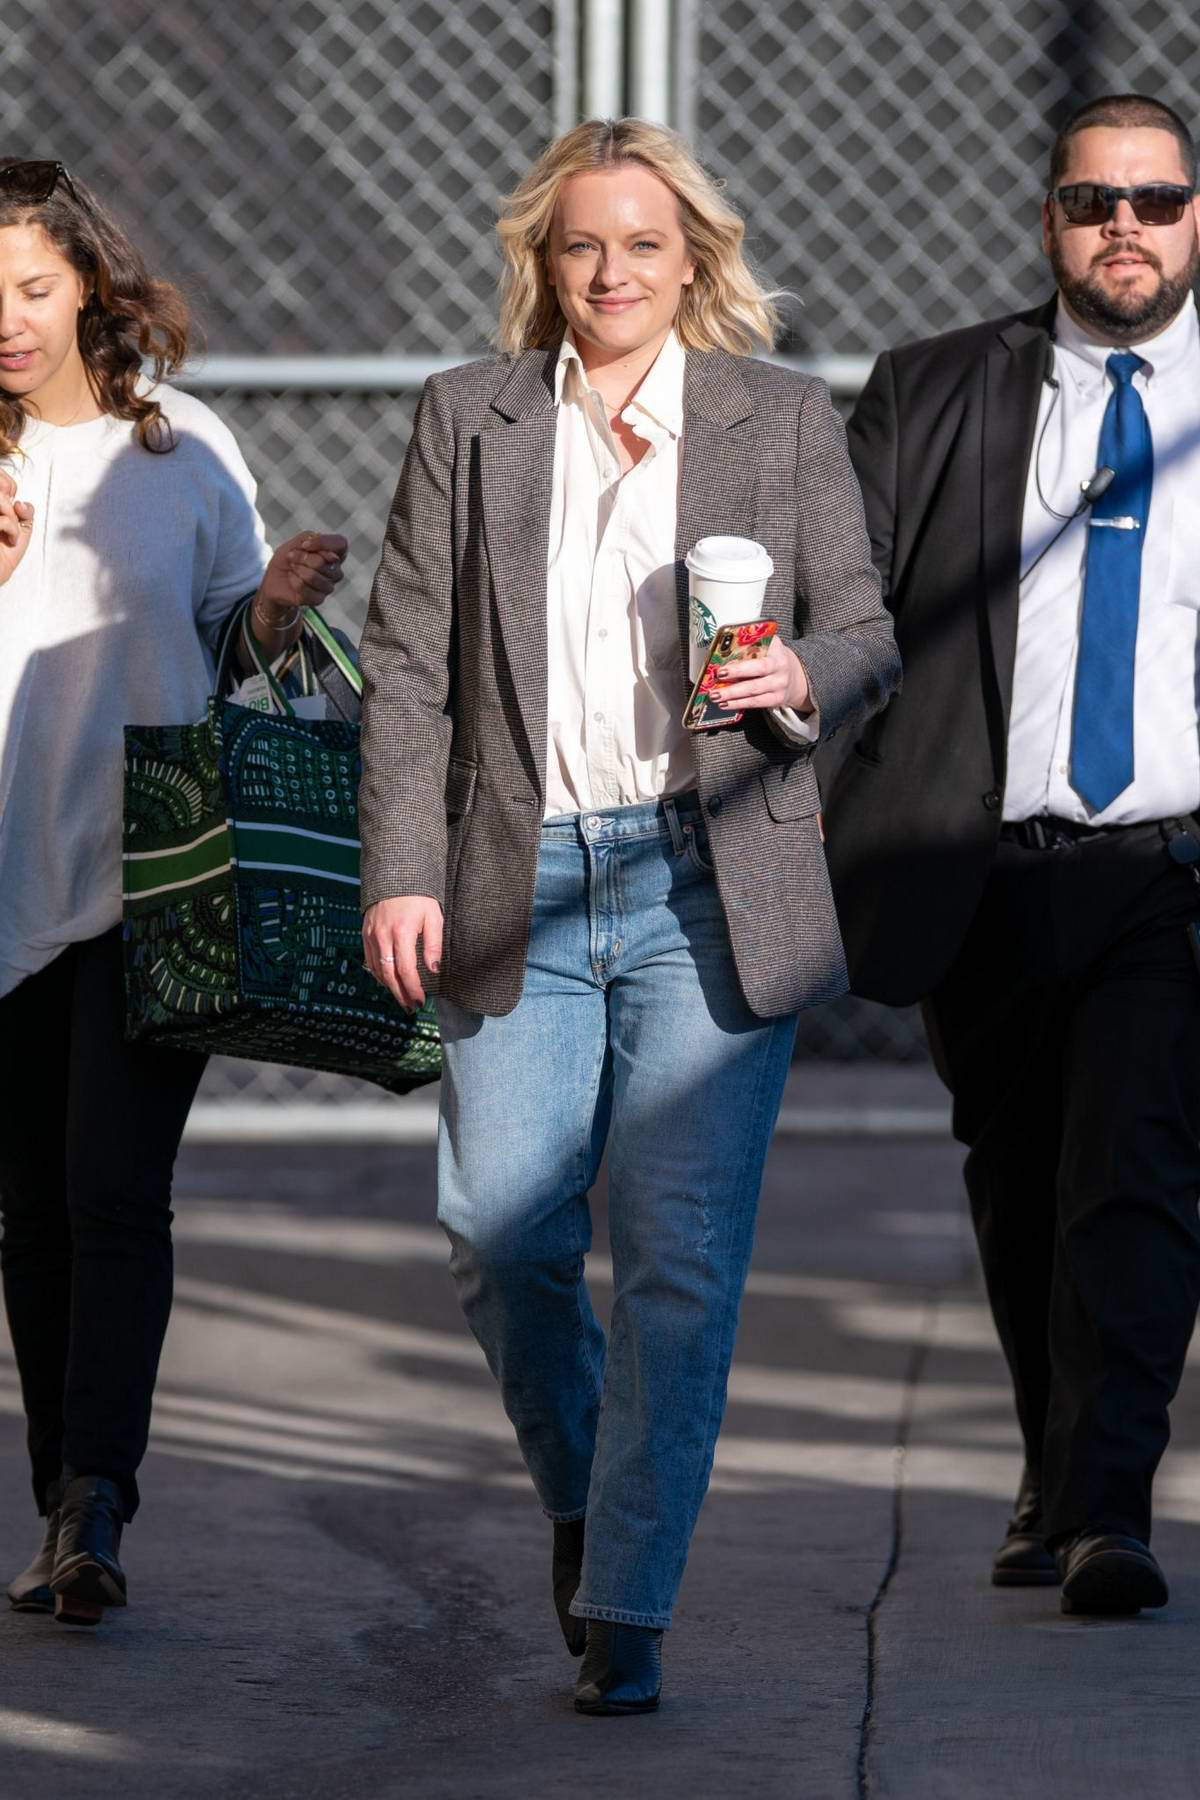 Elisabeth Moss seen arriving for her appearance on 'Jimmy Kimmel Live' in Hollywood, California